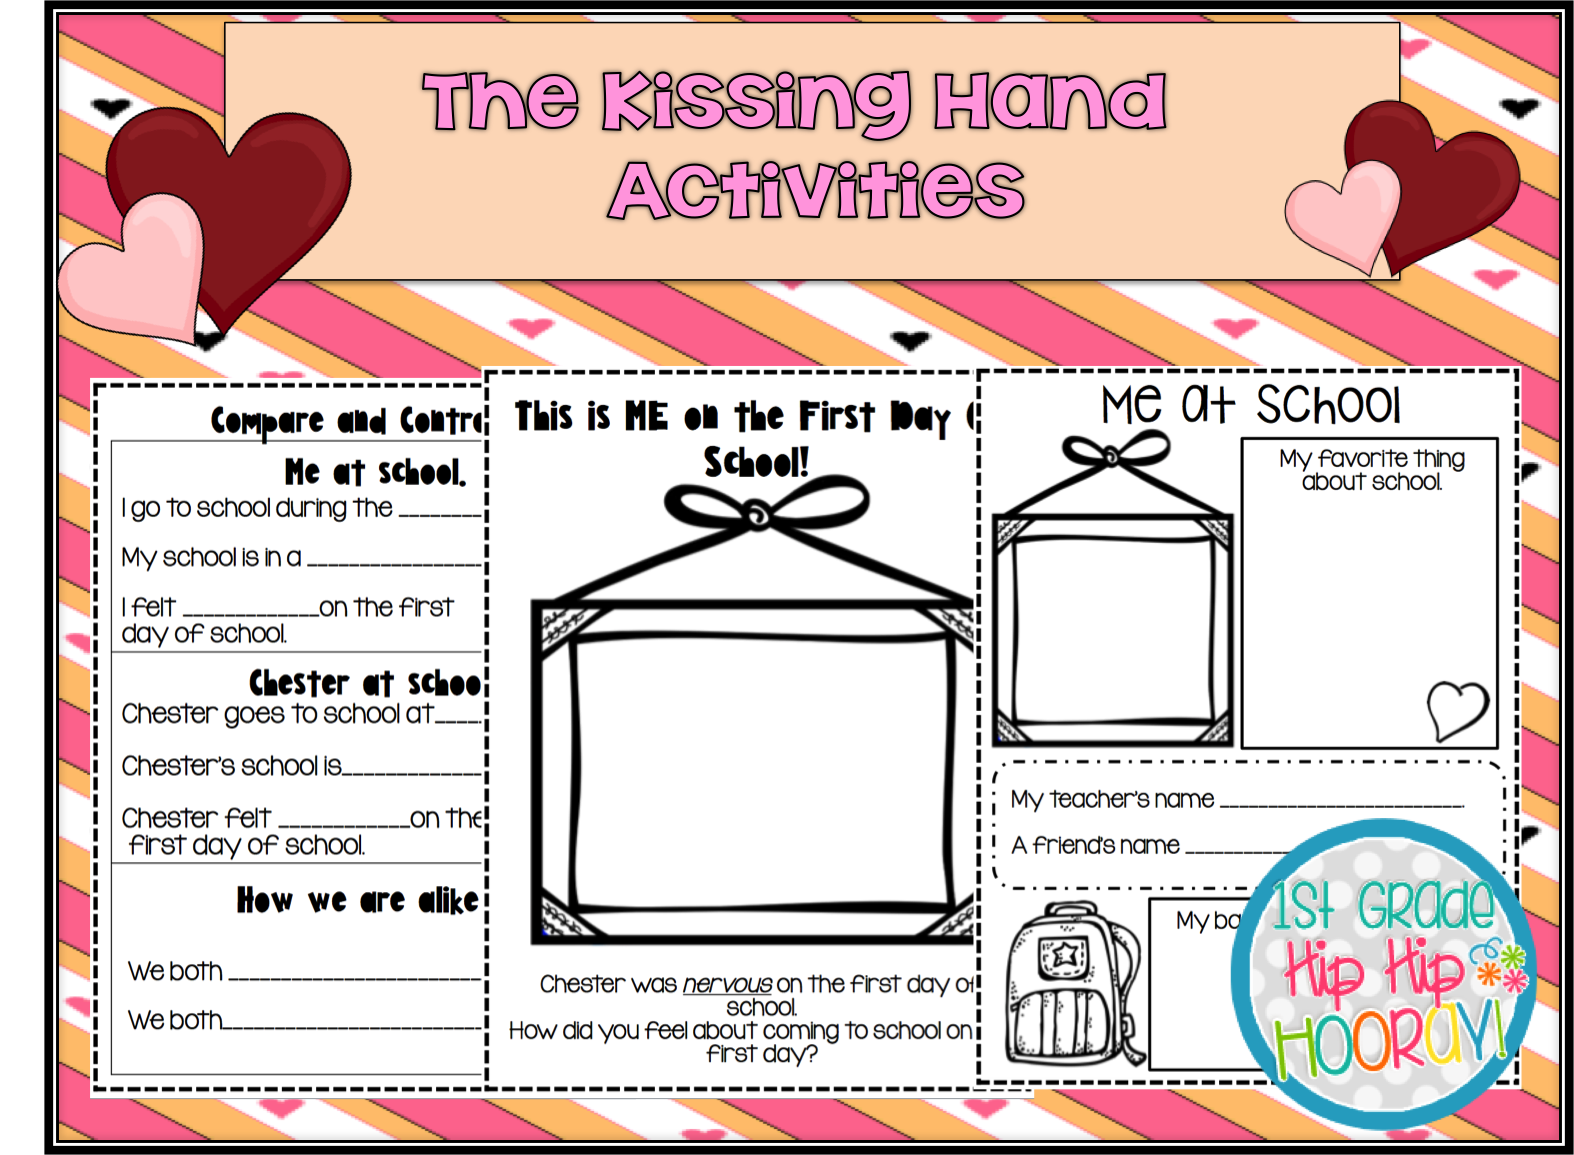 1st Grade Hip Hip Hooray The Kissing Hand Aft And Activities